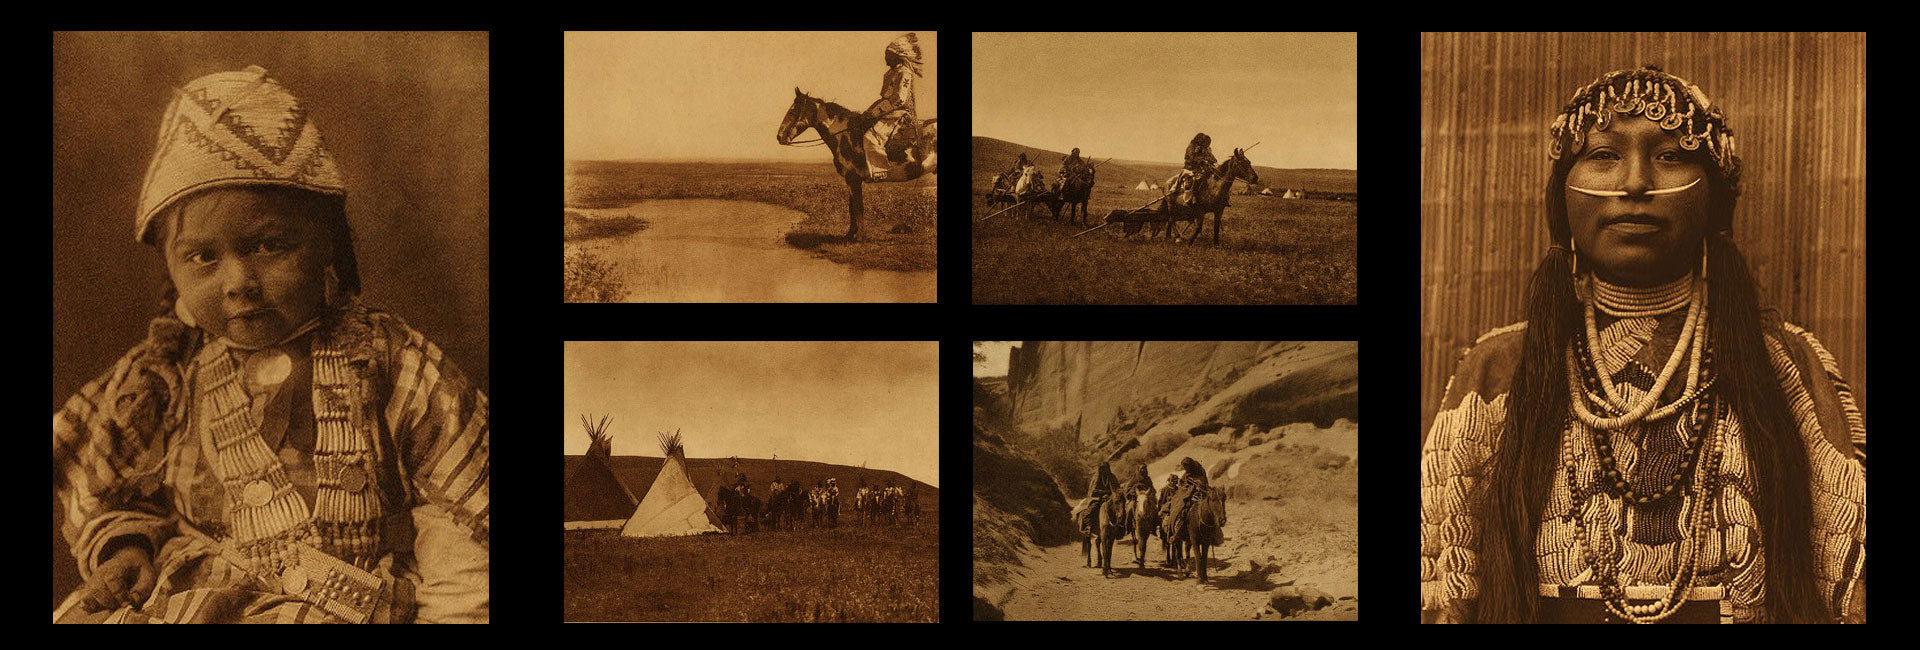 a collage of north american indian images hero 6